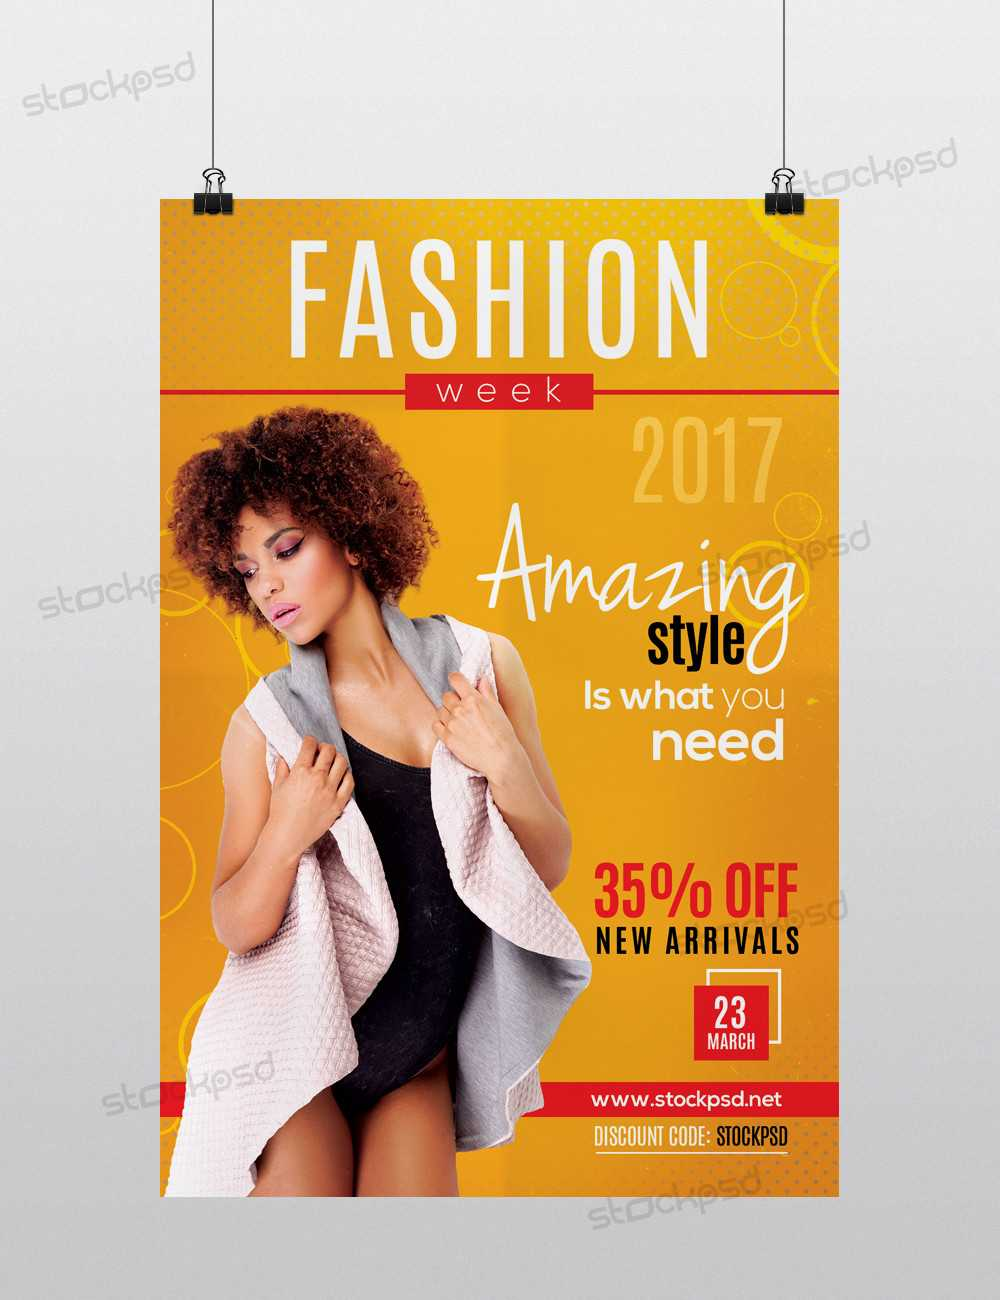 Stockpsd – Freebie Templates | Psd Flyers Archives Regarding Fashion Flyers Templates For Free